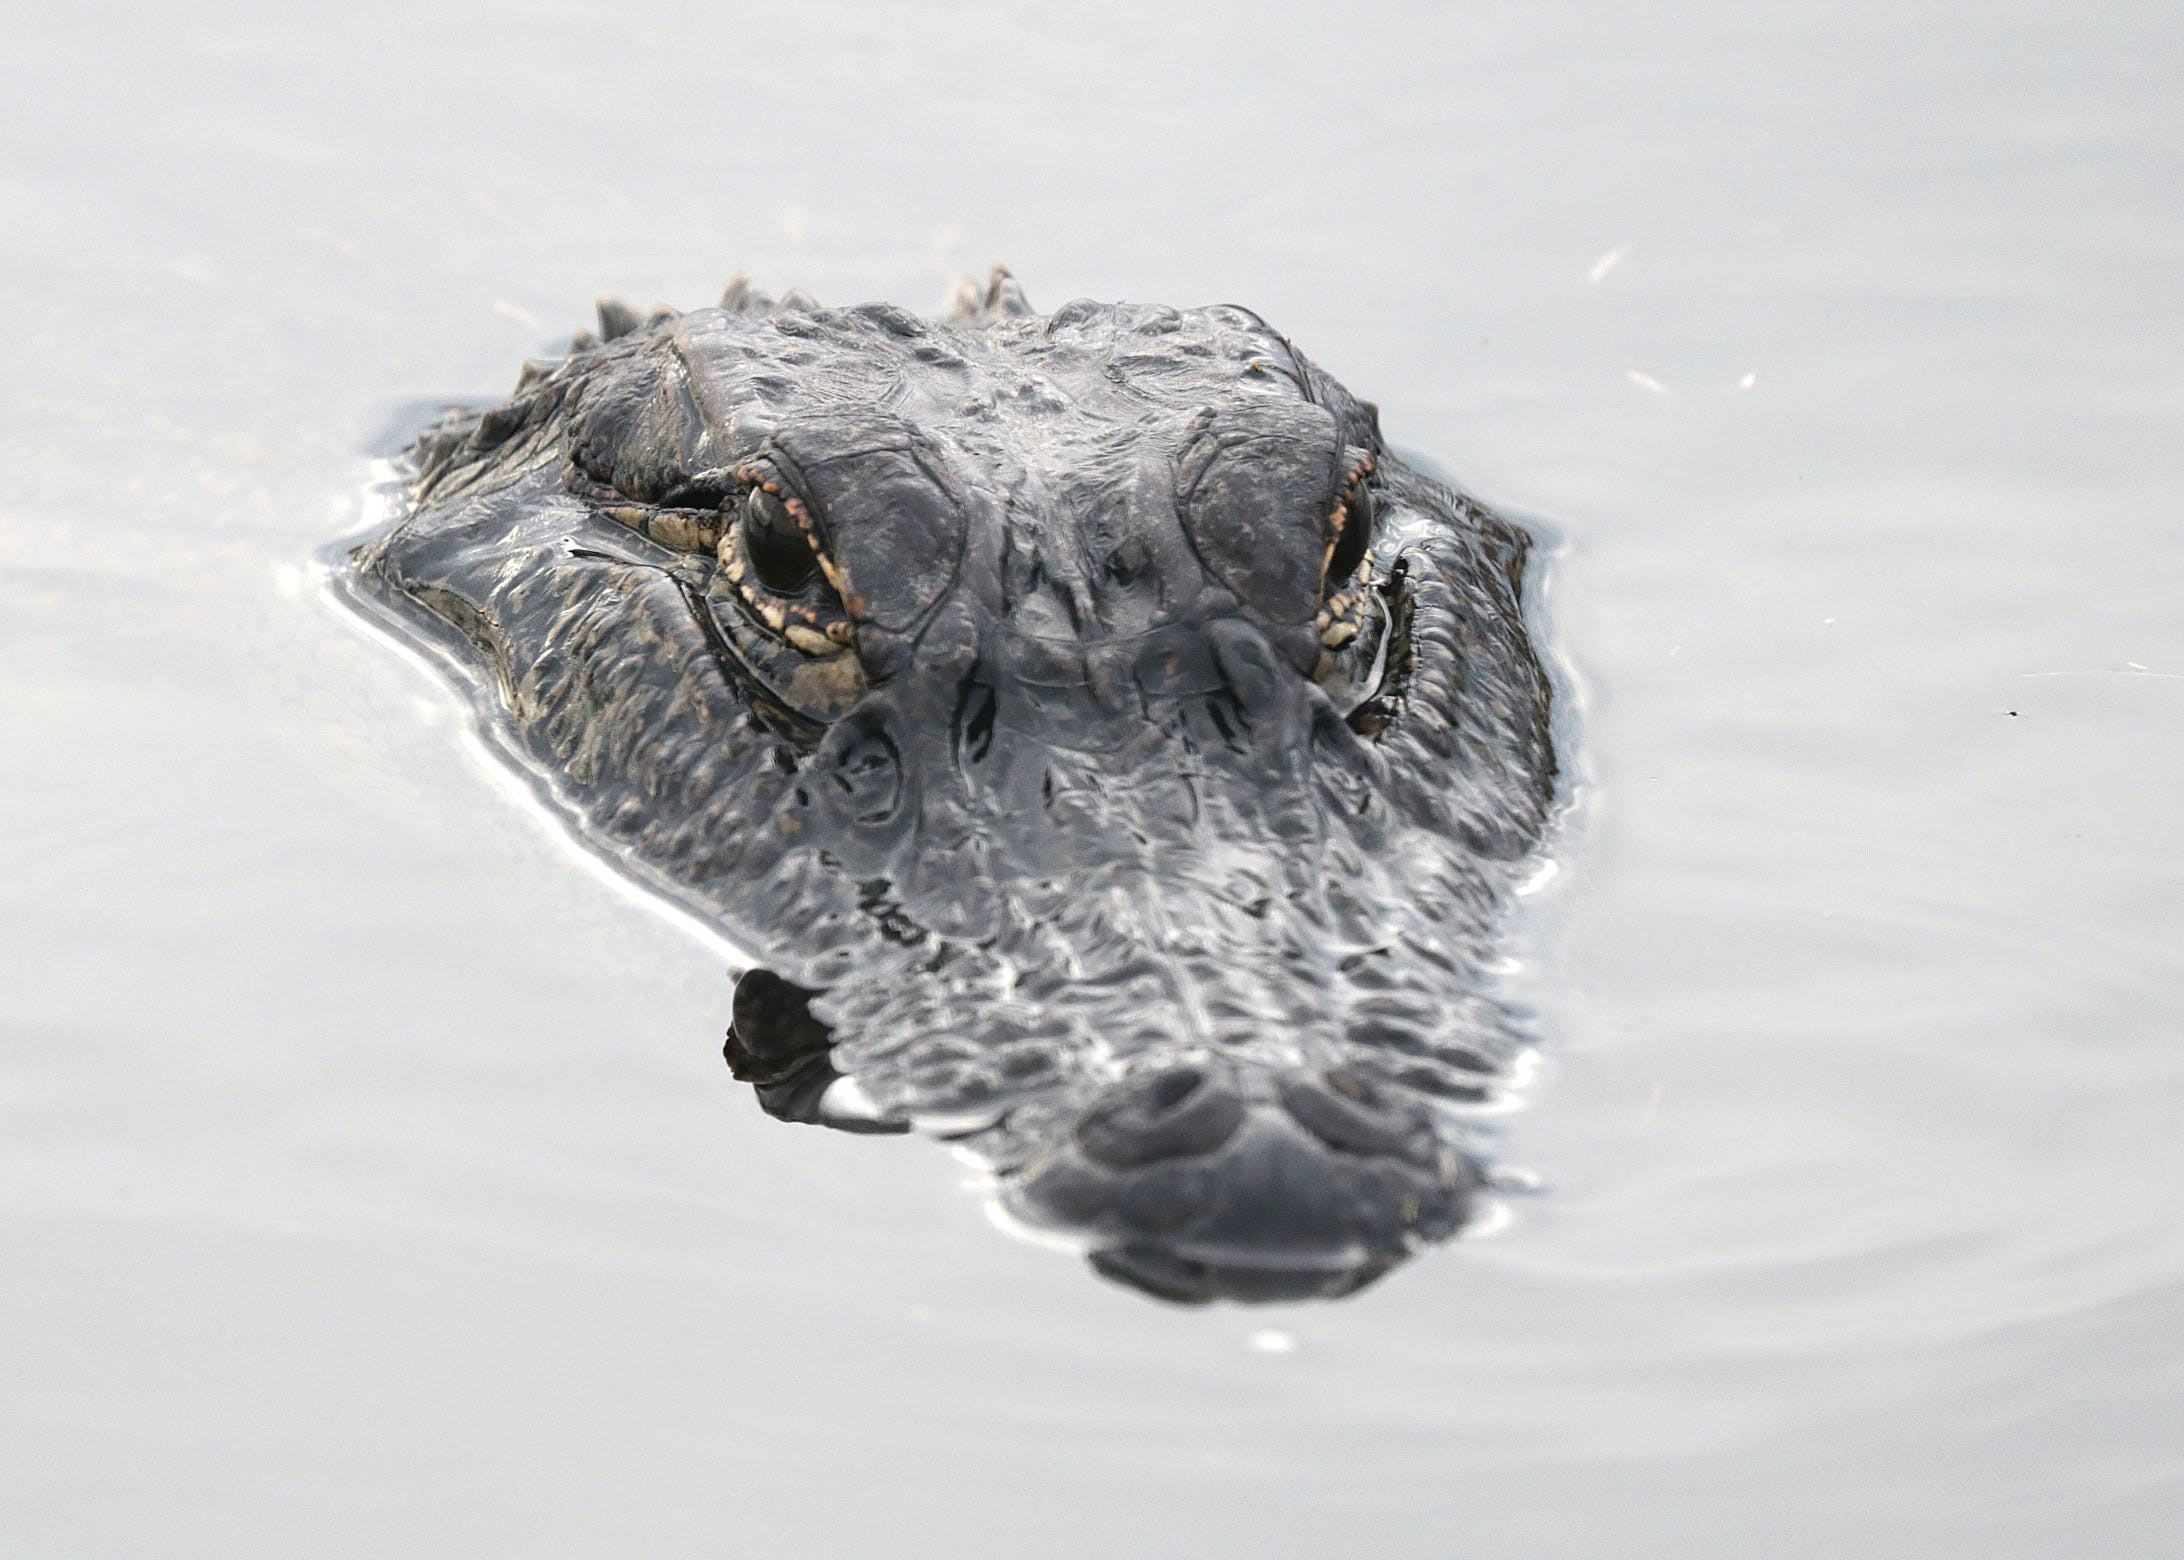 Alligator Head